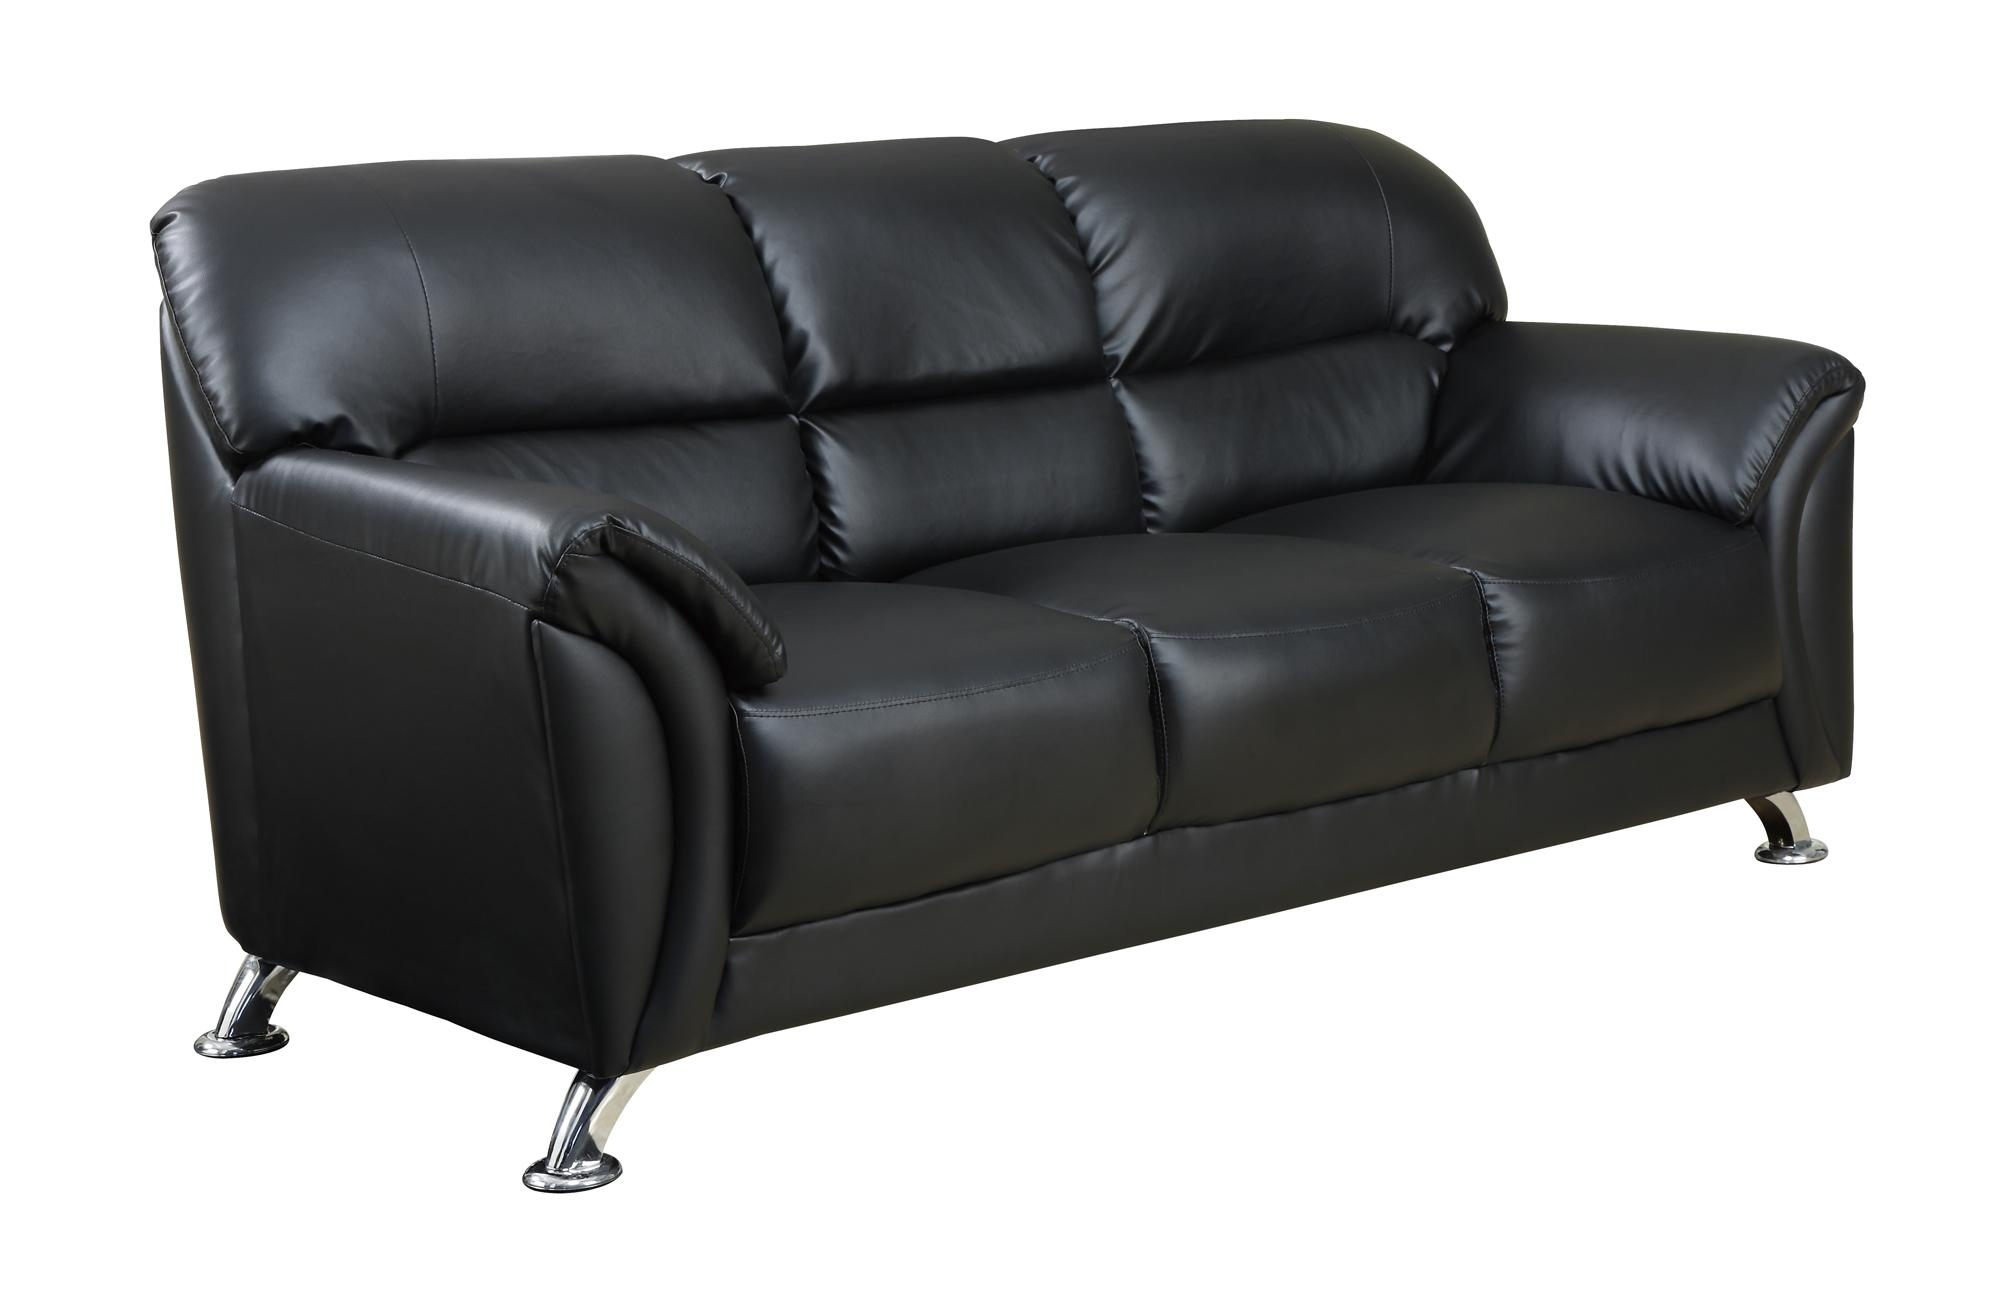 U9103 Black Vinyl Sofaglobal Furniture Throughout Black Vinyl Sofas (Image 19 of 20)